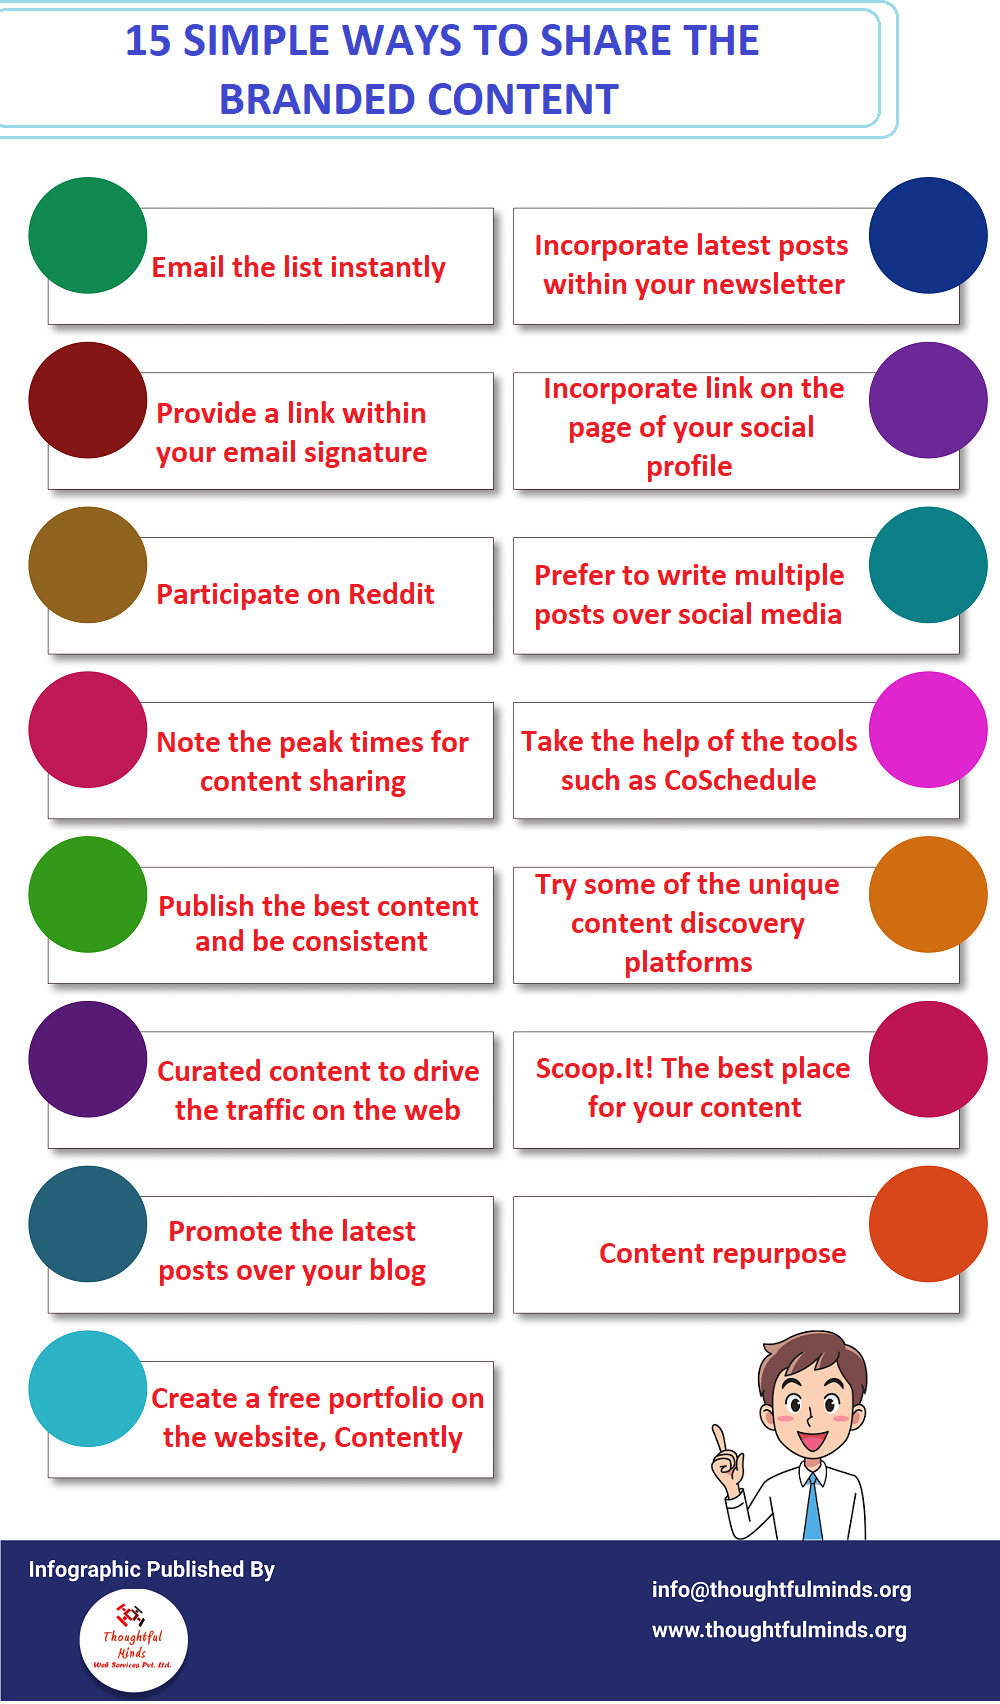 Infographic On Content Sharing Tips - ThoughtfulMinds